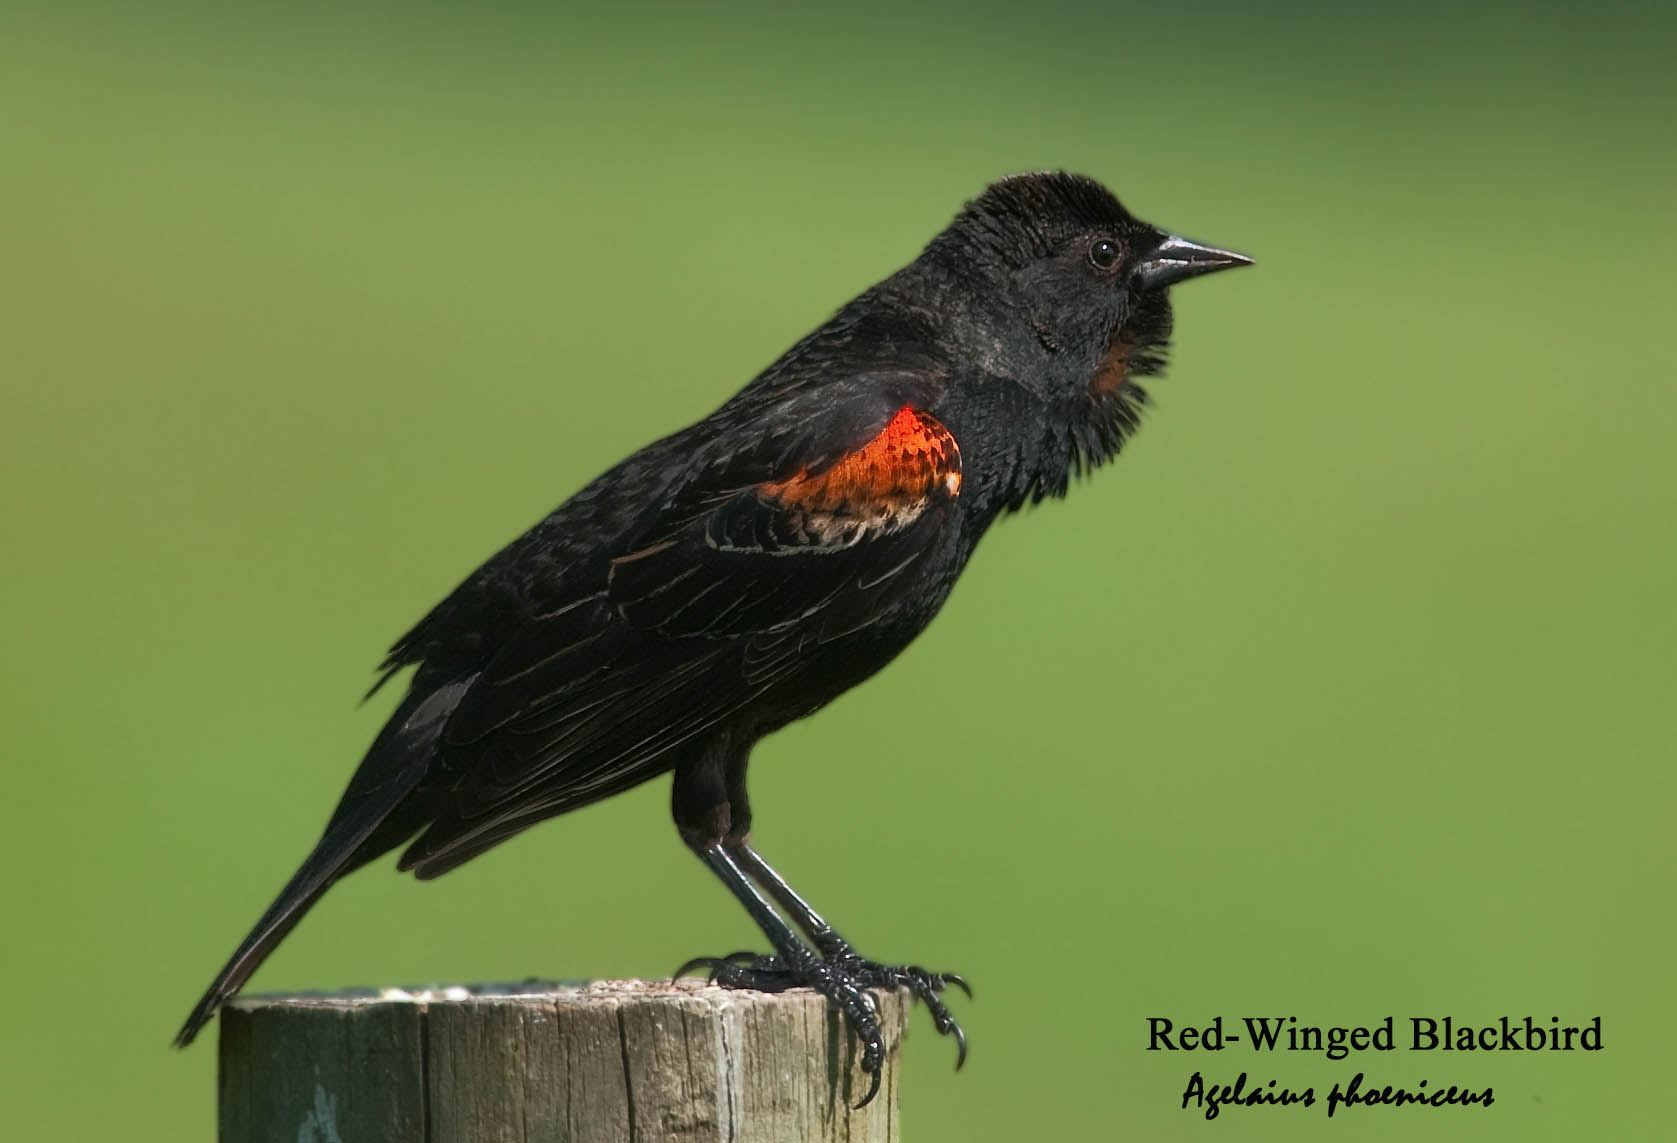 Red-Winged Blackbird - 1